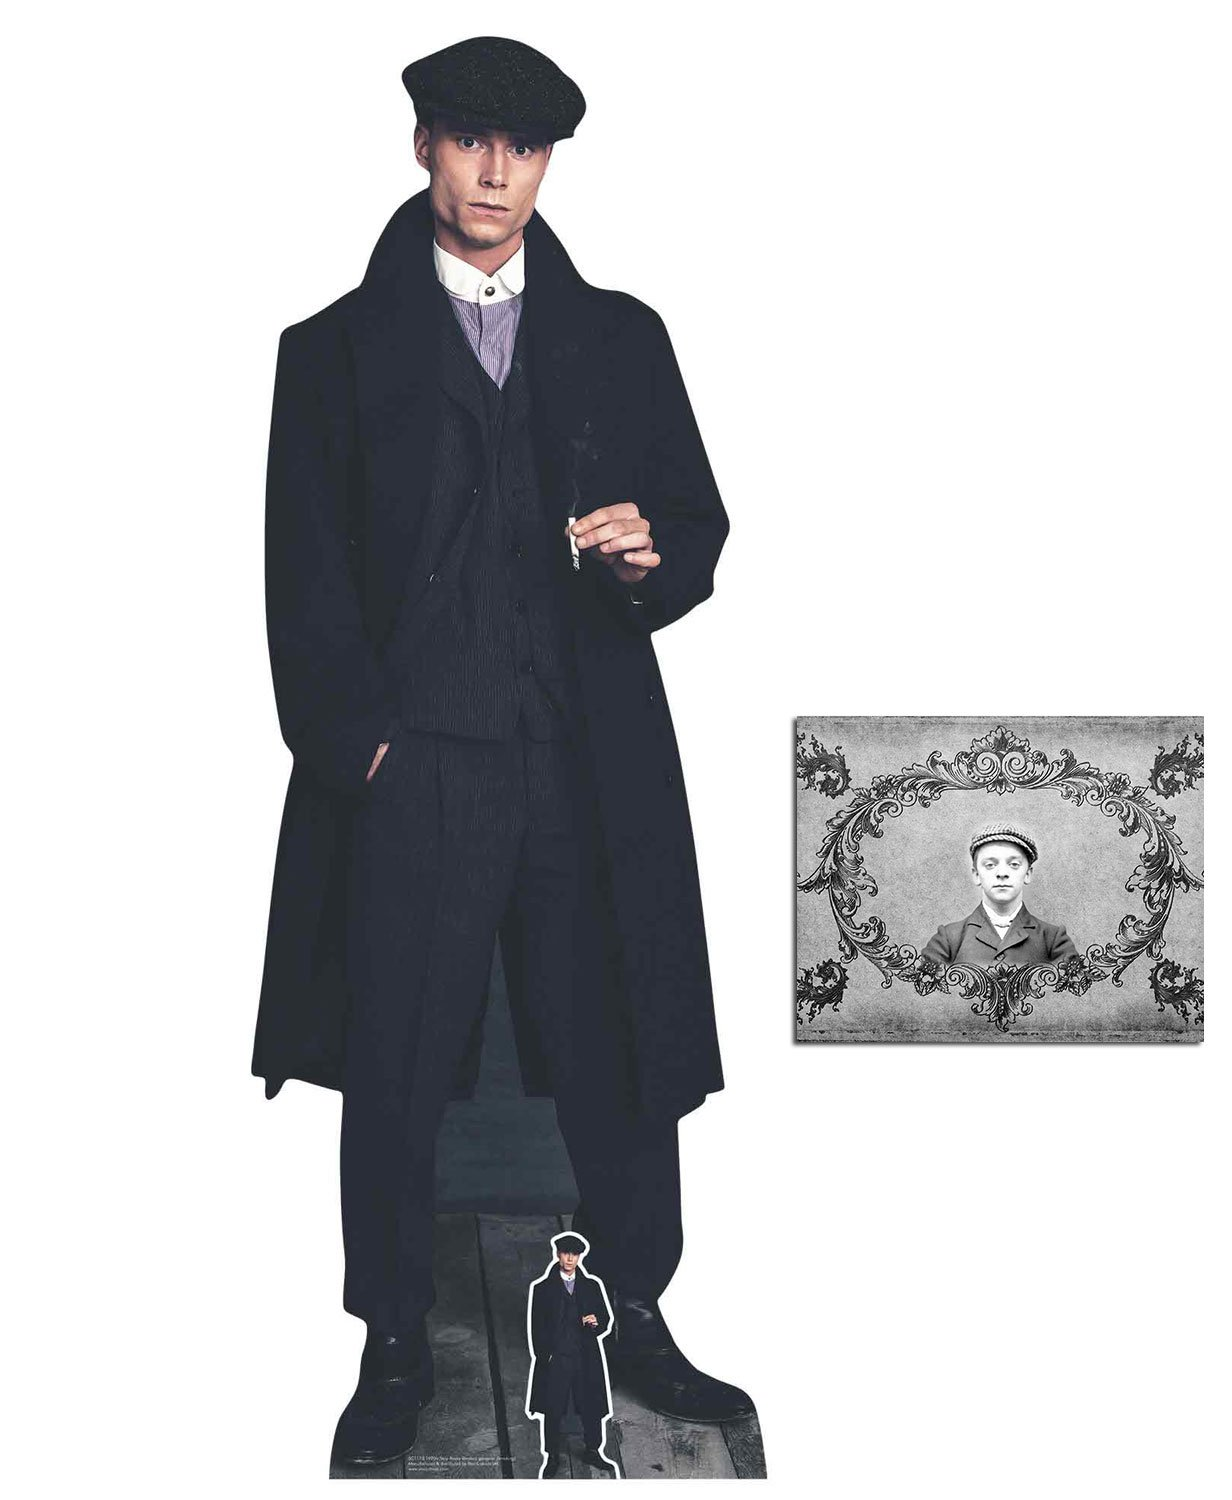 BundleZ-4-FanZ Peaky Blinder Style British Gangster Smoking Lifesize and Mini Cardboard Cutout Fan Pack, 185cm x 66cm Includes 8x10 Star Photo